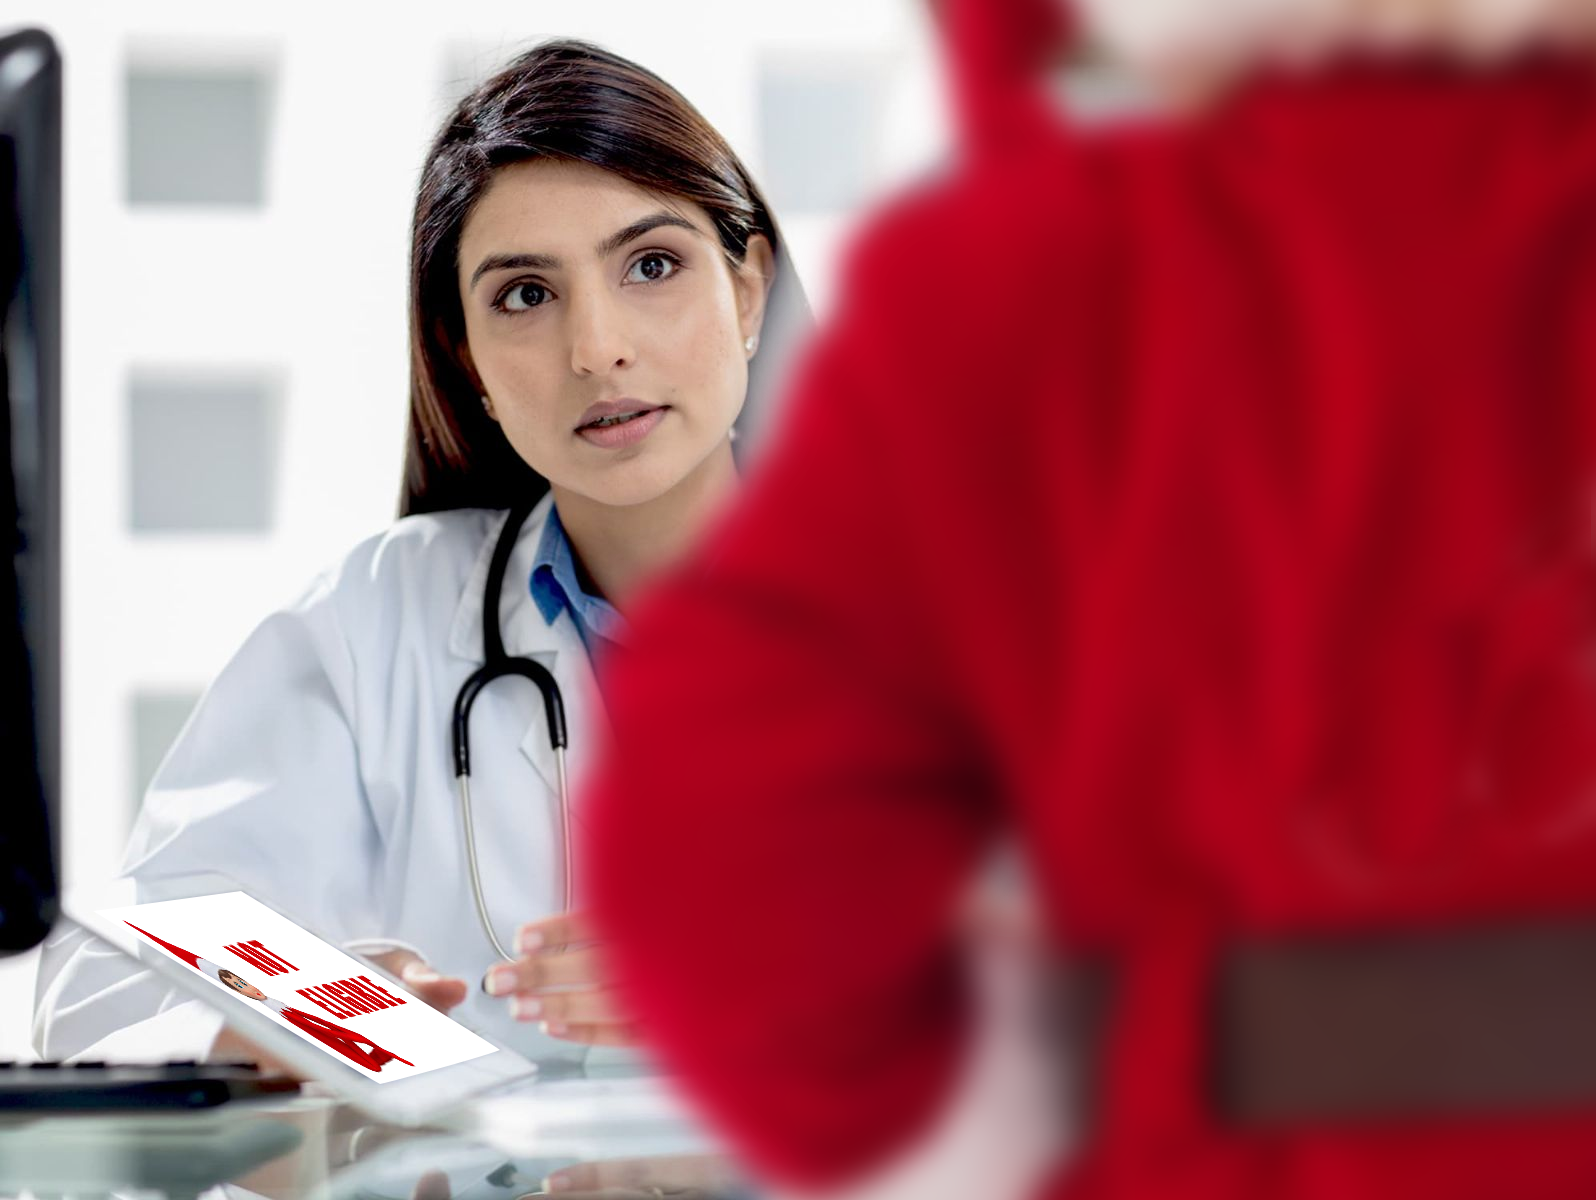 Doctor in a conversation with Santa Claus